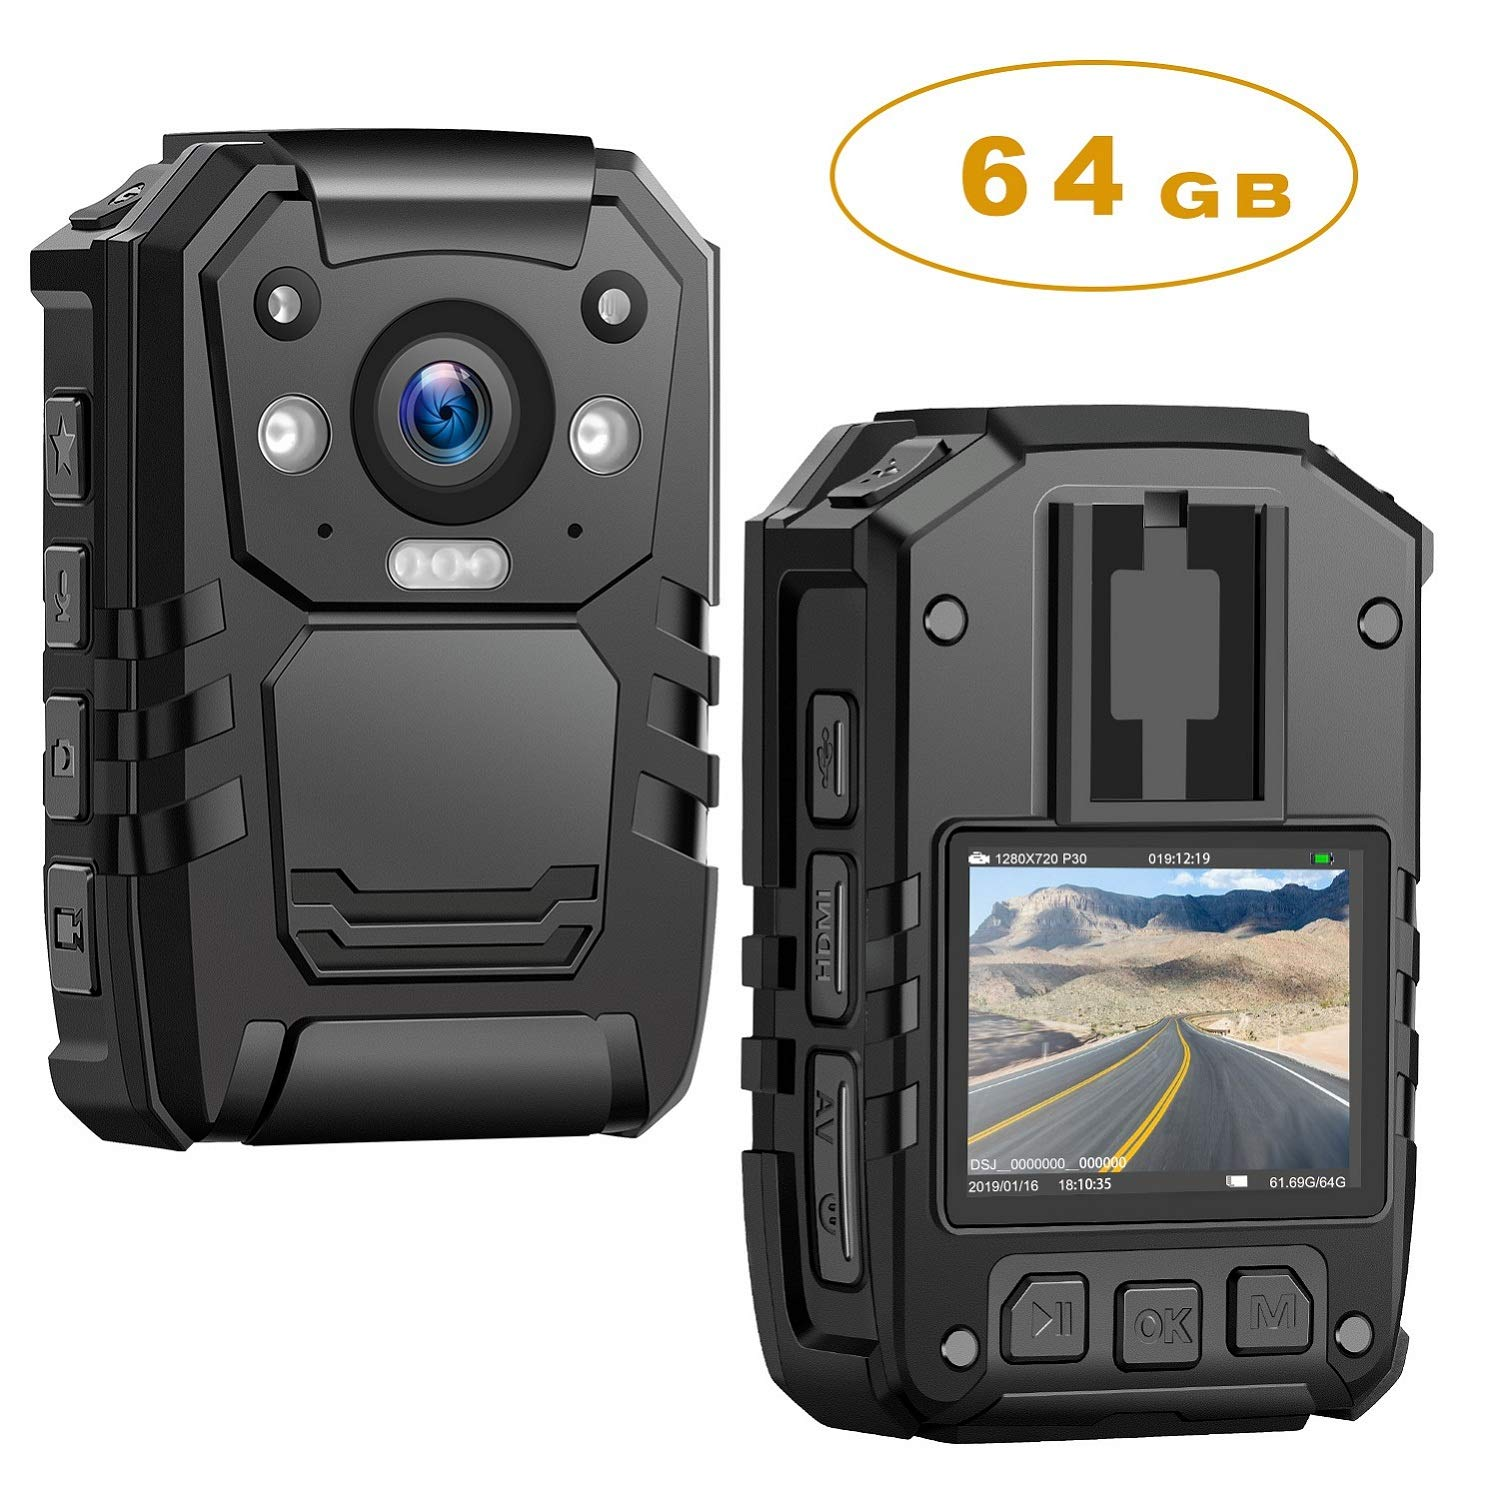 1296P HD Police Body Camera,64G Memory,CammPro Premium Portable Body Camera,Waterproof Body-Worn Camera with 2 Inch Display,Night Vision,GPS for Law Enforcement Recorder,Security Guards,Personal Use by CammPro